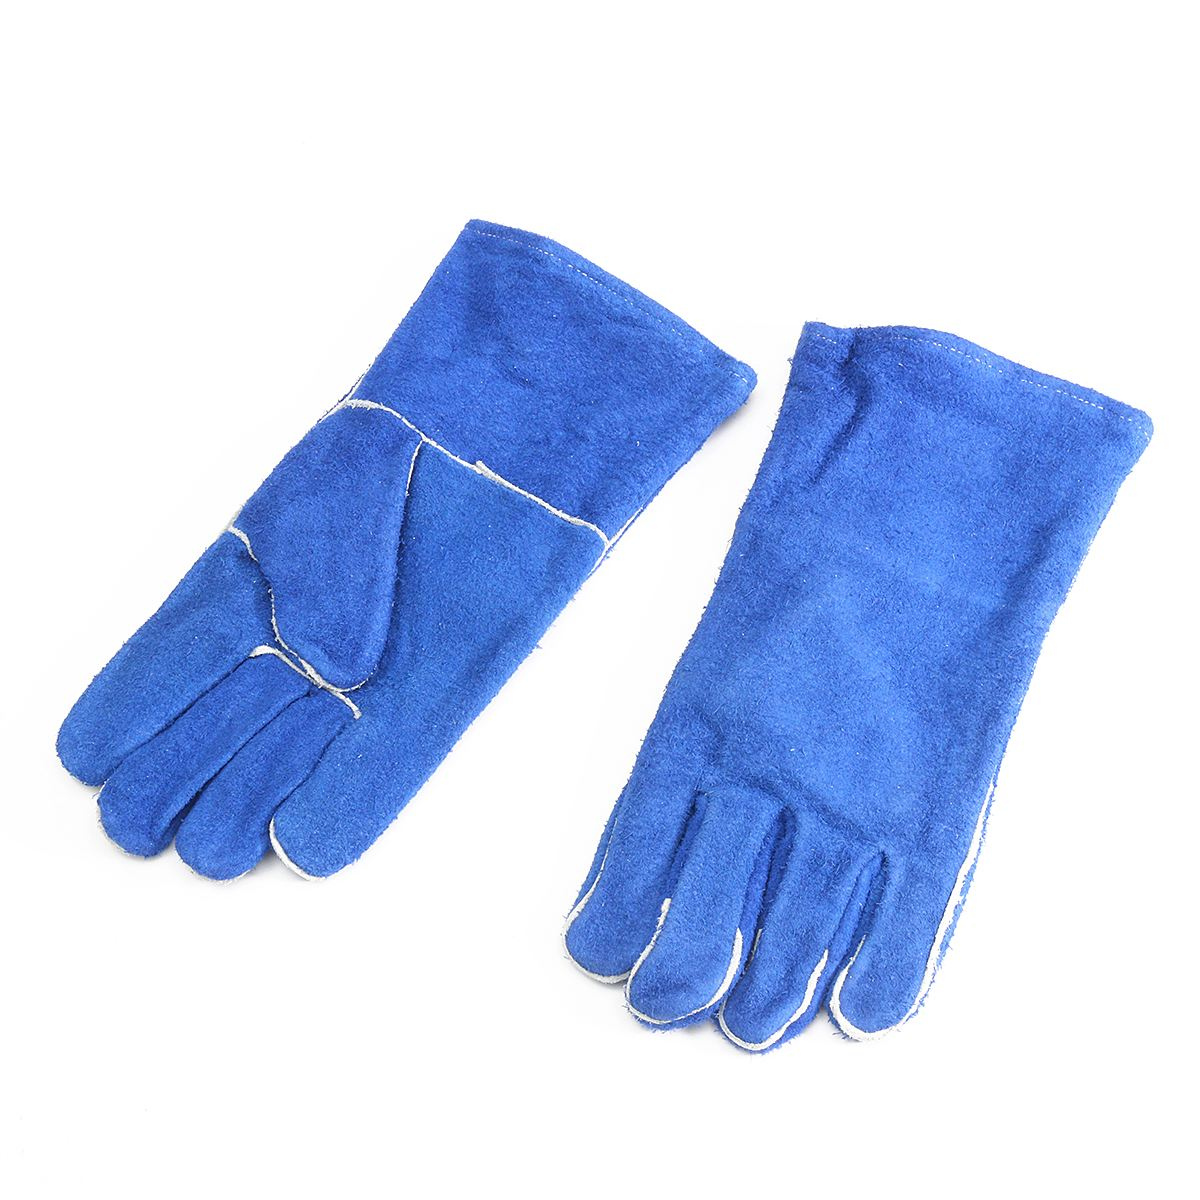 NEW Blue Woodburner Gloves Long Lined Welders Gauntlets Log Fire High Temp Stove XL  Workplace Safety Gloves manitobah рукавицы fur gauntlets